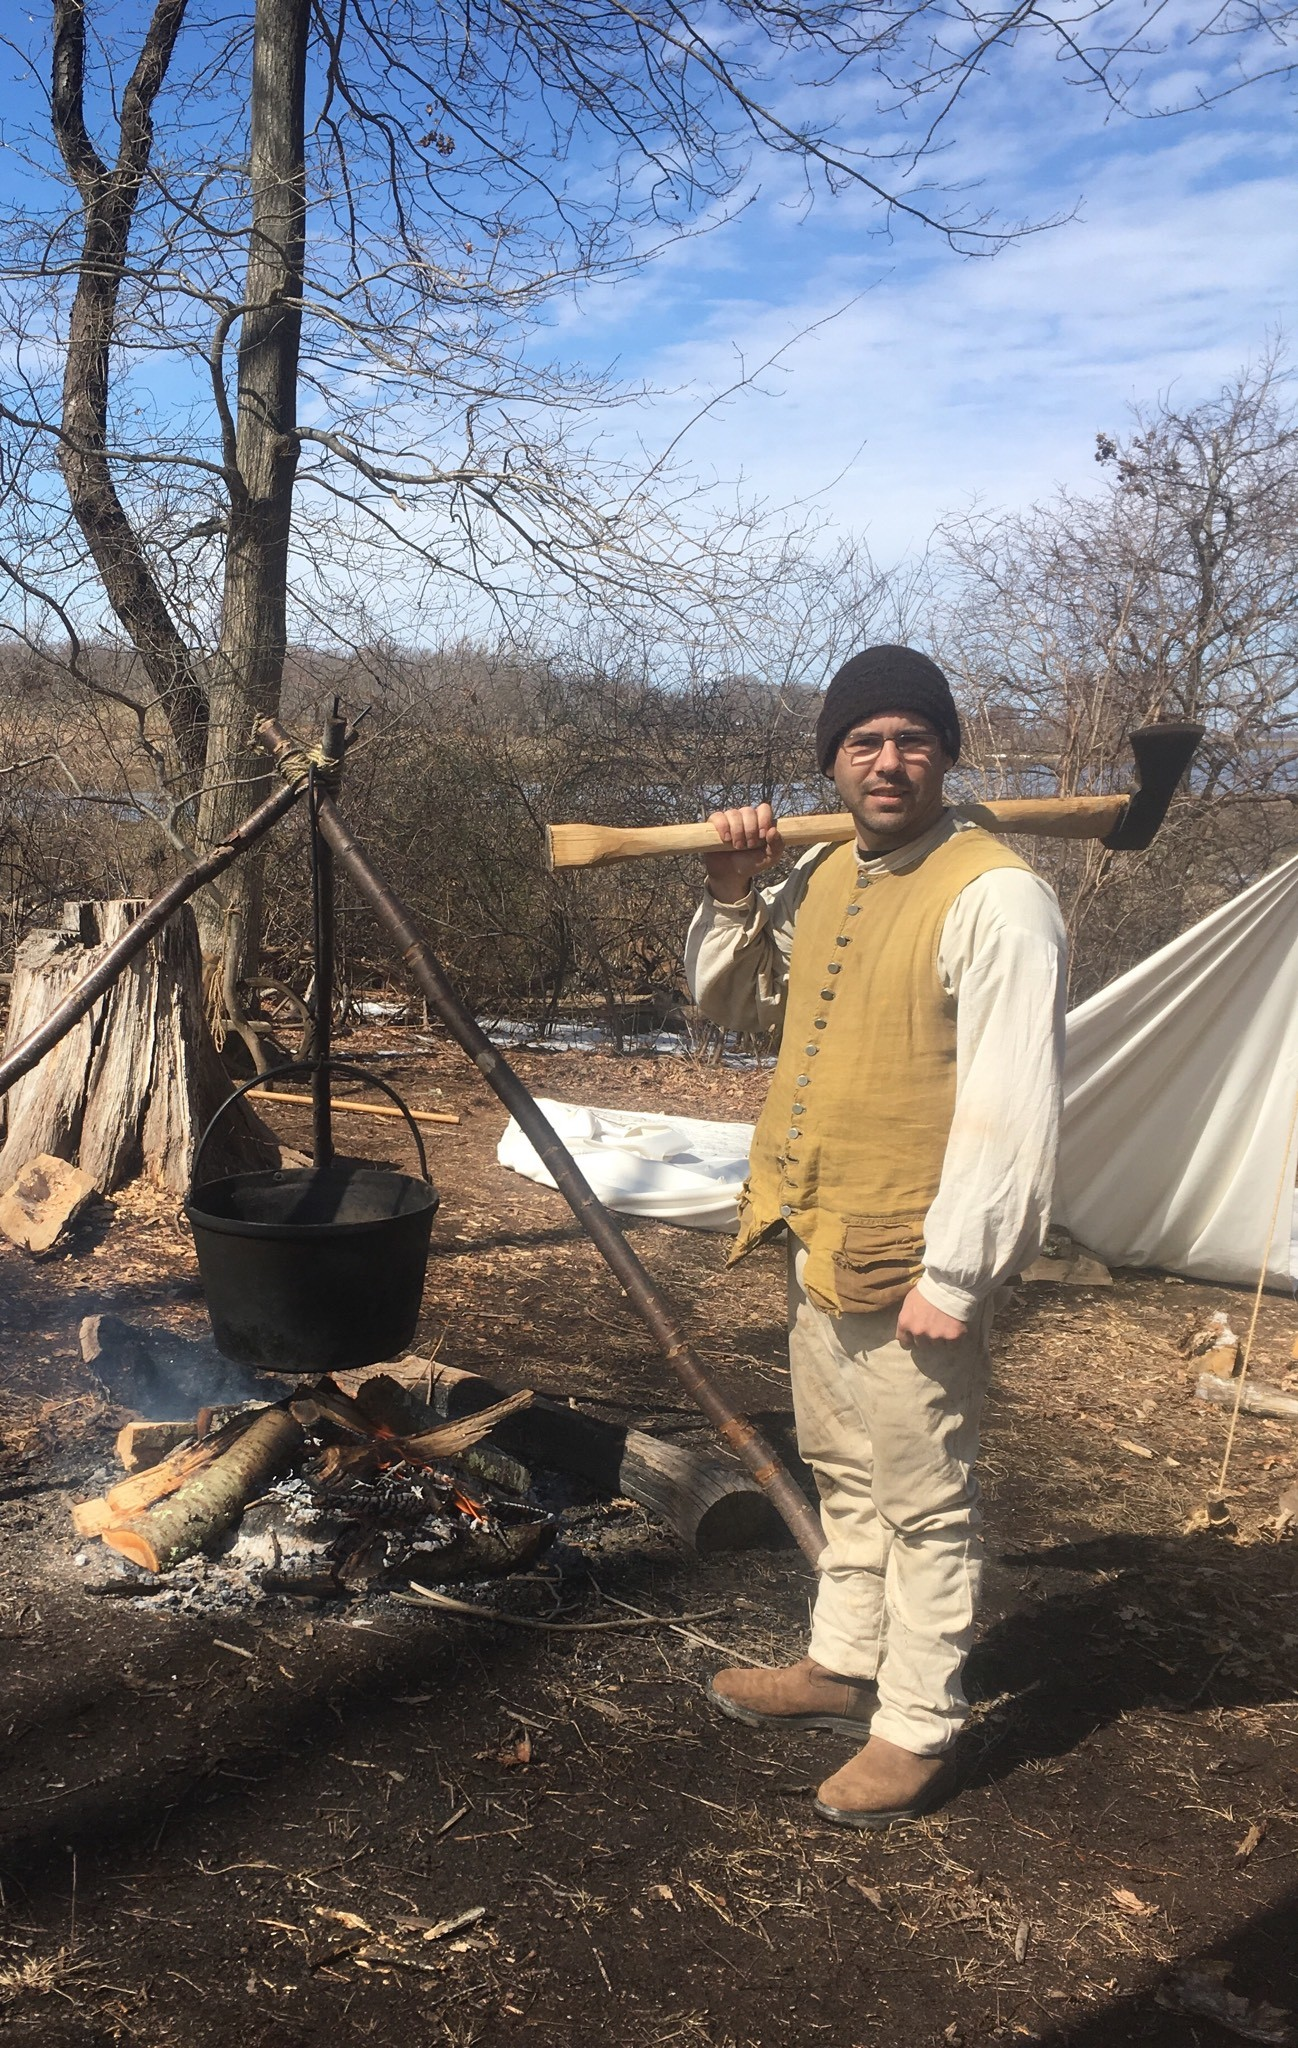 Todd Stevens tends the fire at Coggeshall's maple sugaring camp.